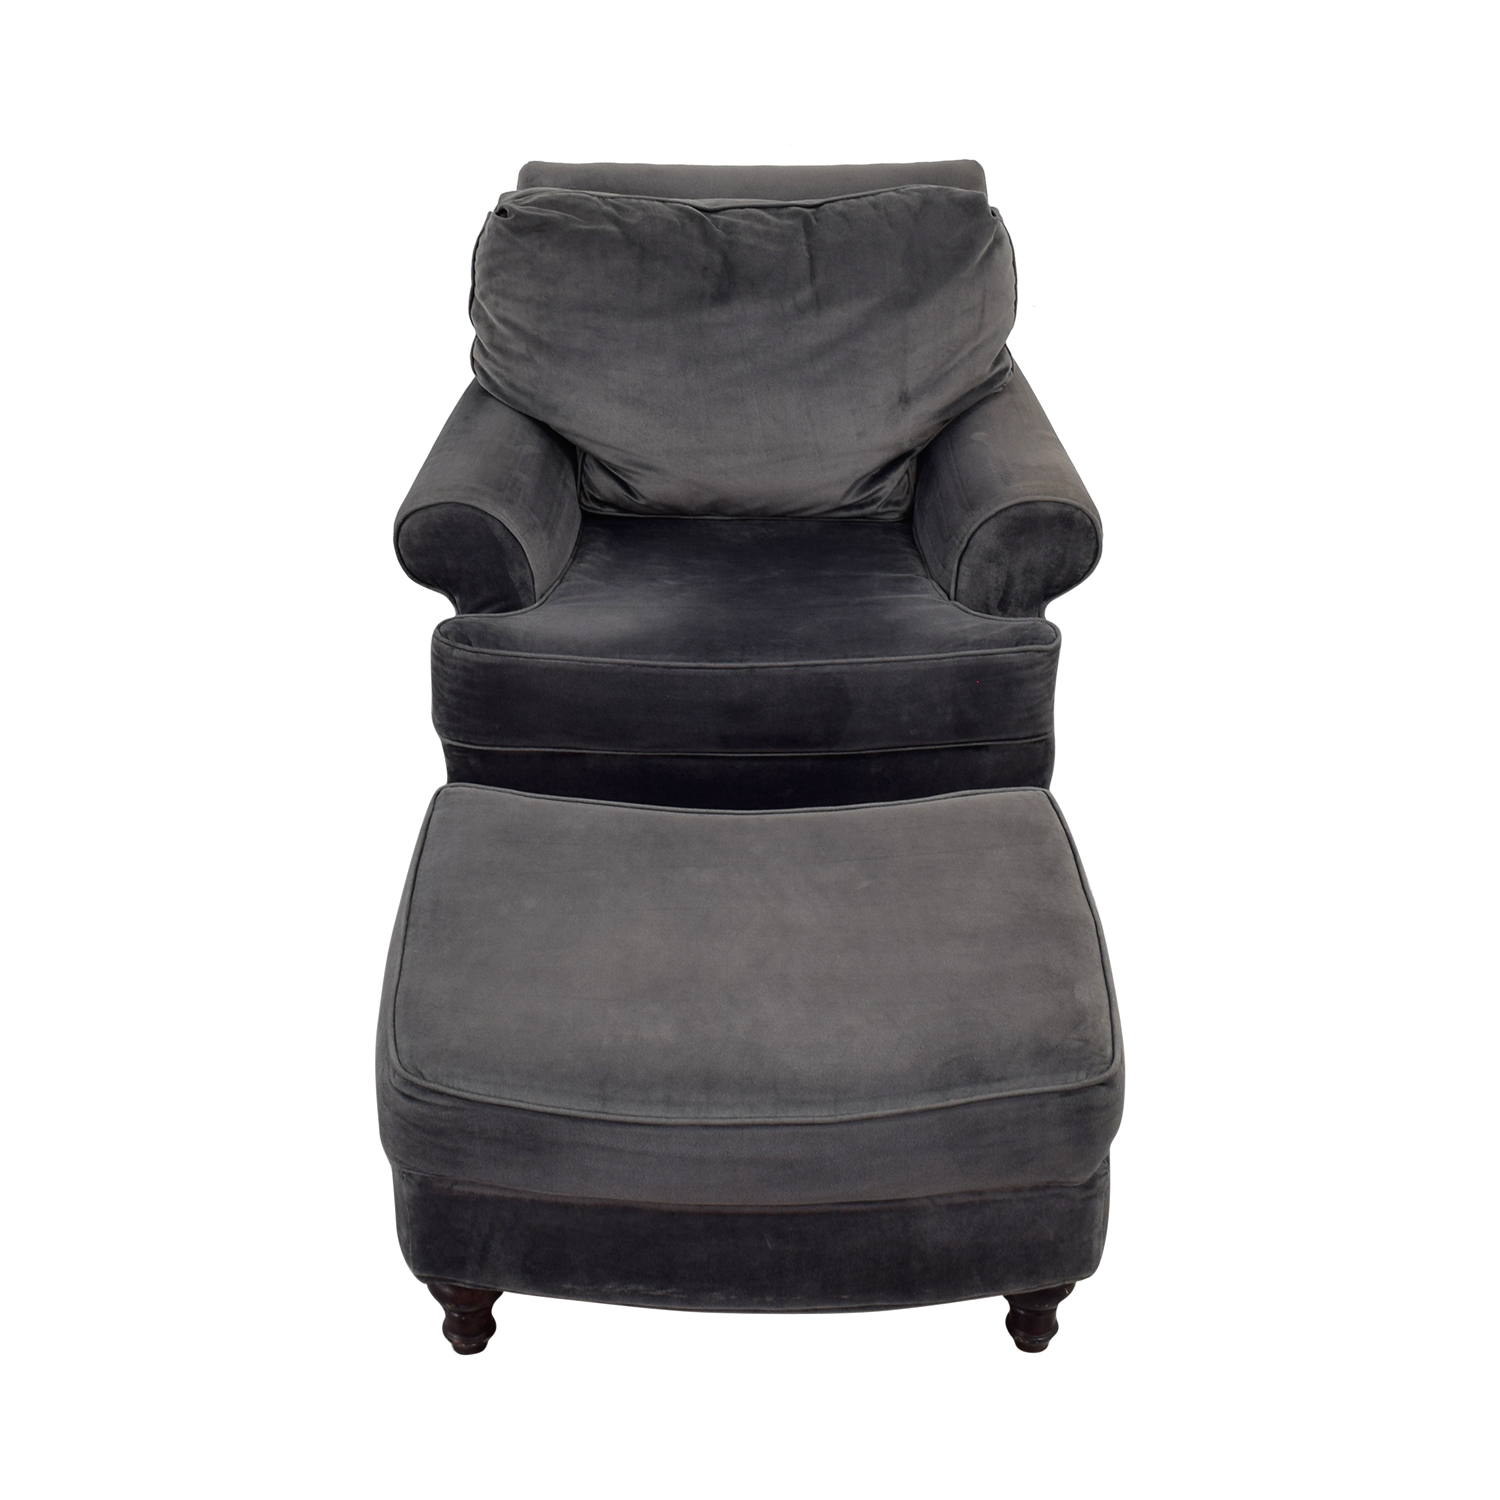 Performance Velvet Upholstered Chair with Ottoman dimensions